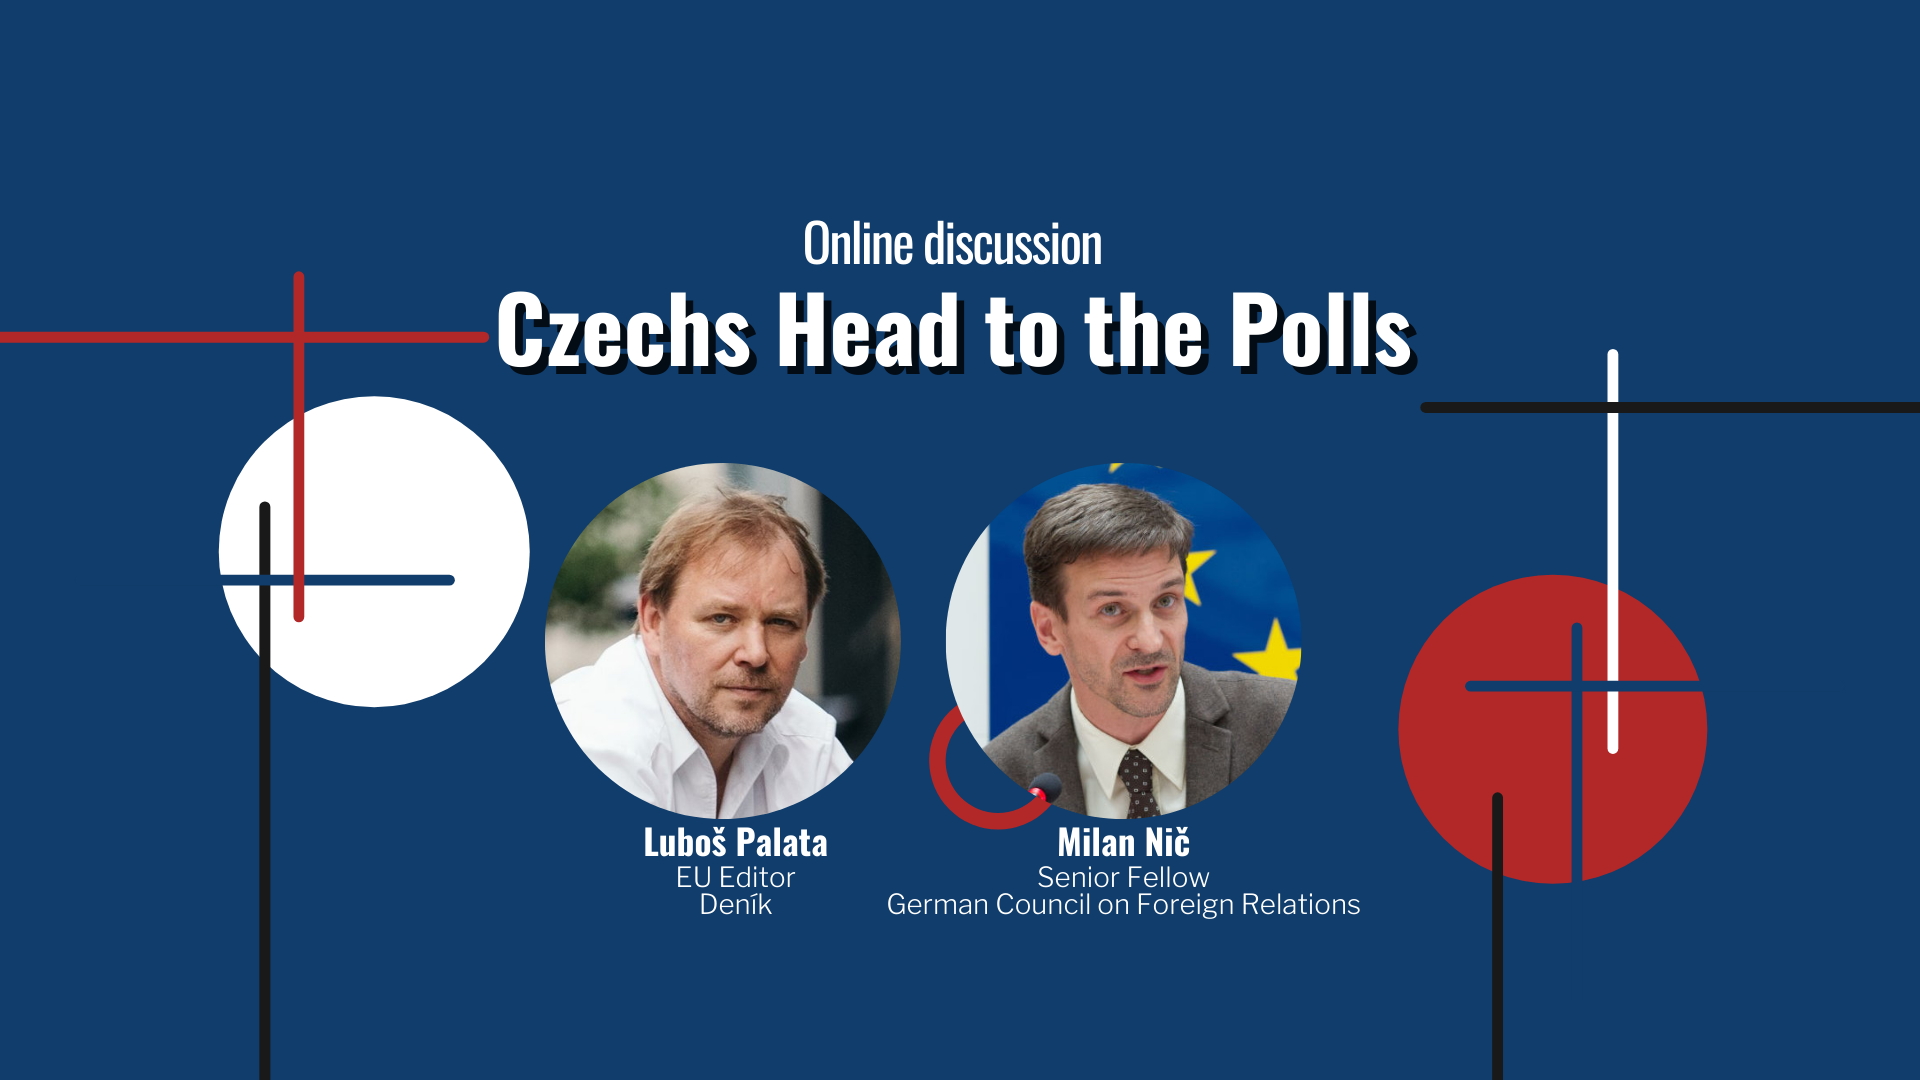 Visual Introduction to the Event on Czech Elections